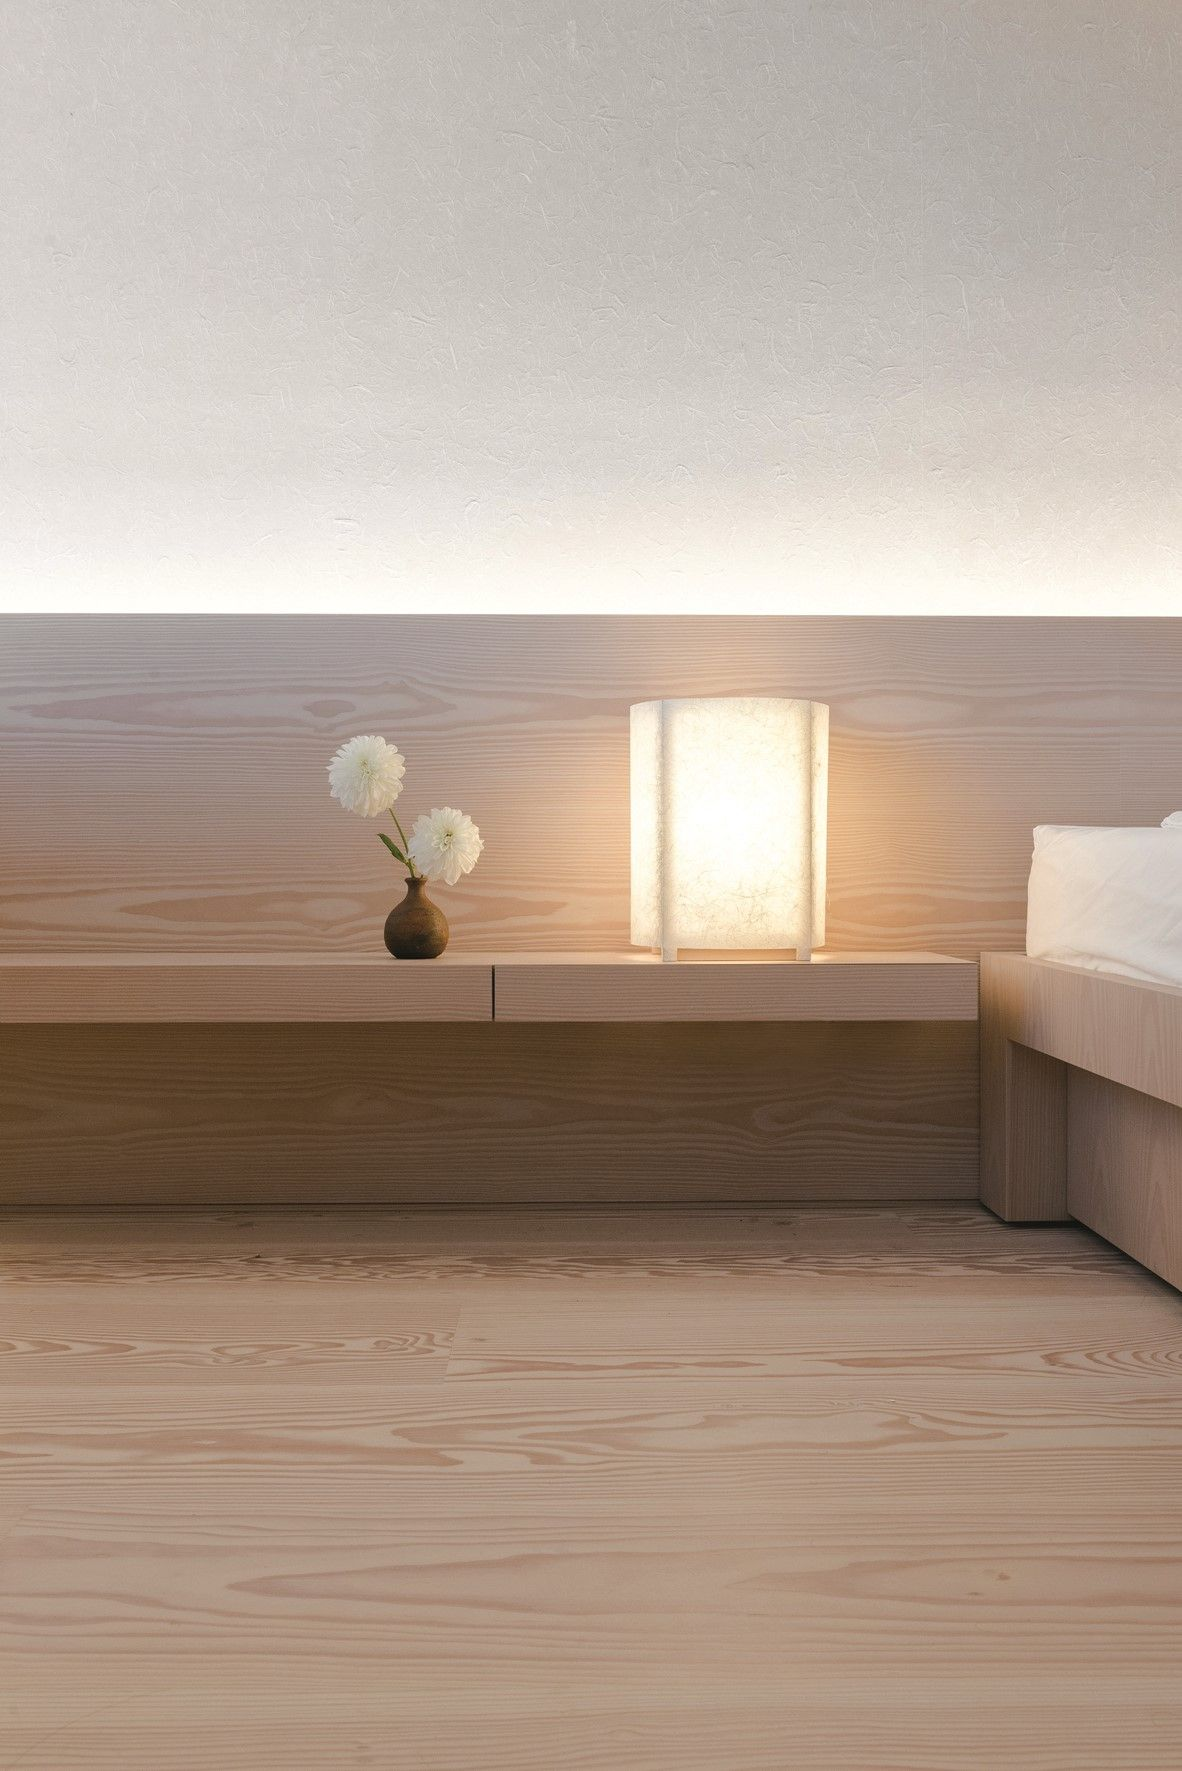 Miller Apartment Get Inspired By The Many Bespoke Solutions With Dinesen Douglas In This Priva With Images Minimalism Interior Contemporary Bedroom Design Bedroom Interior